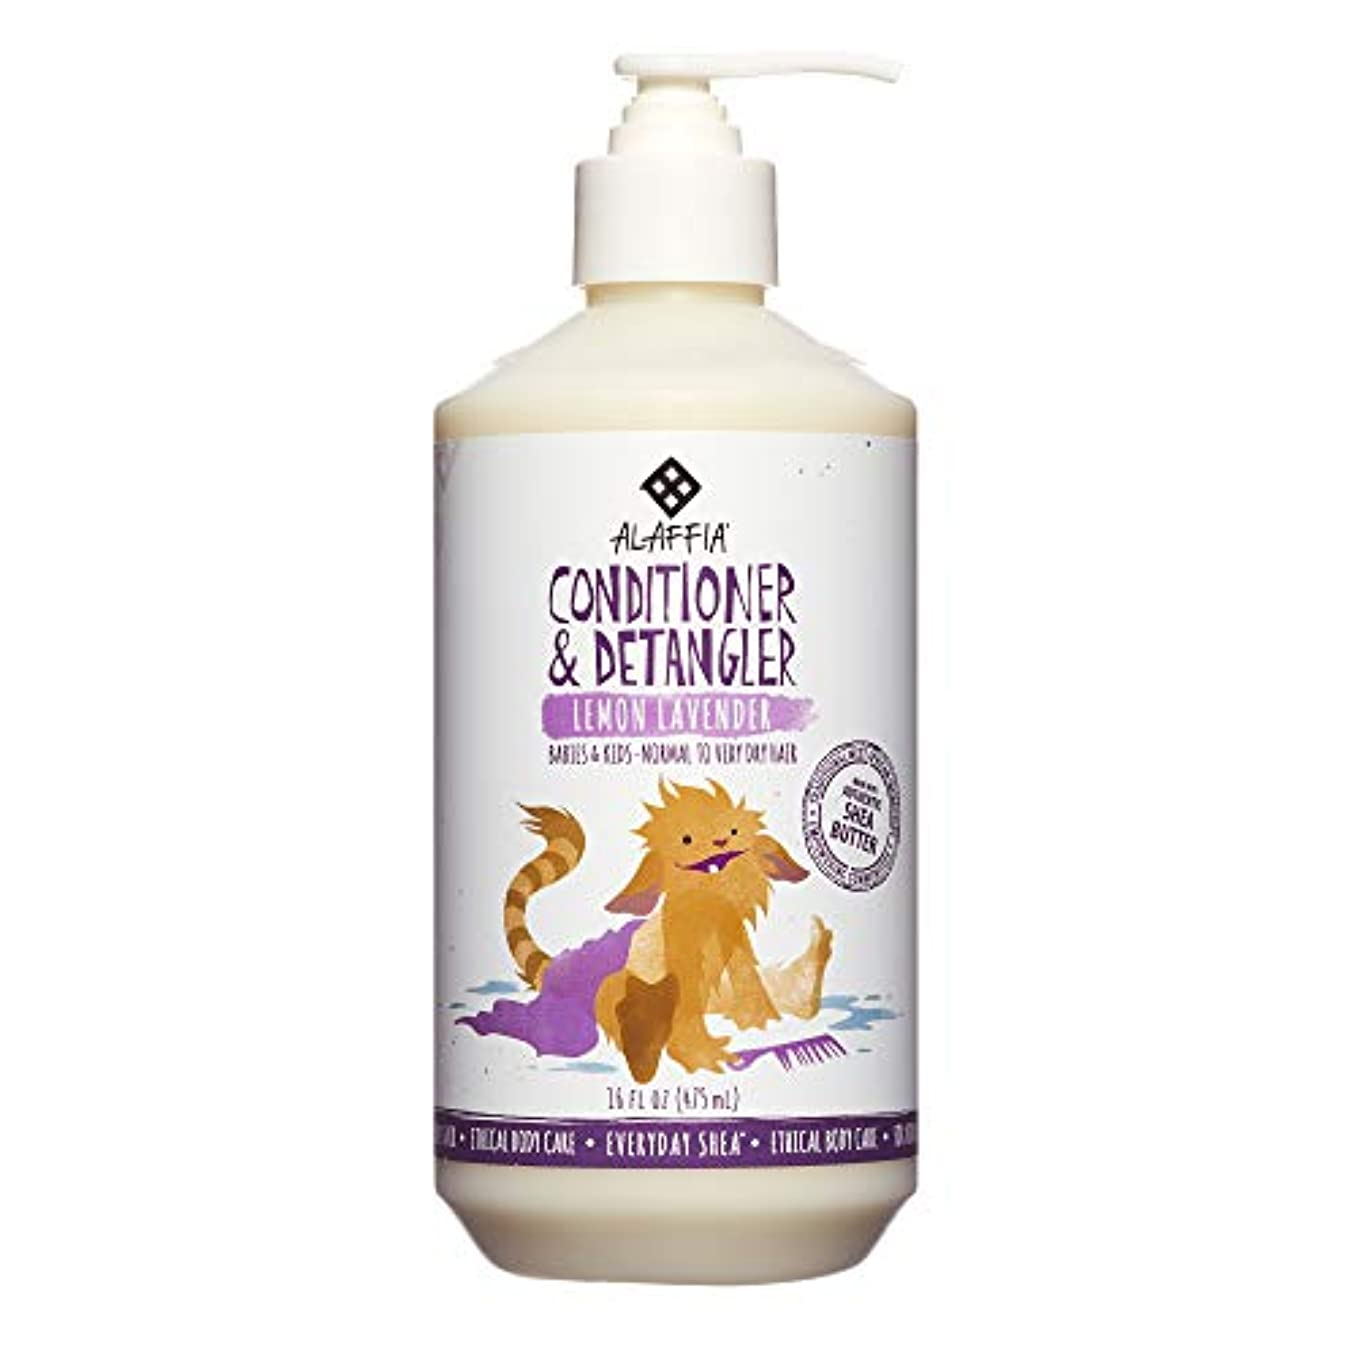 削減宿題をする所有者Everyday Shea, Conditioner & DeTangler, Lemon Lavender, 16 fl oz (475 ml)